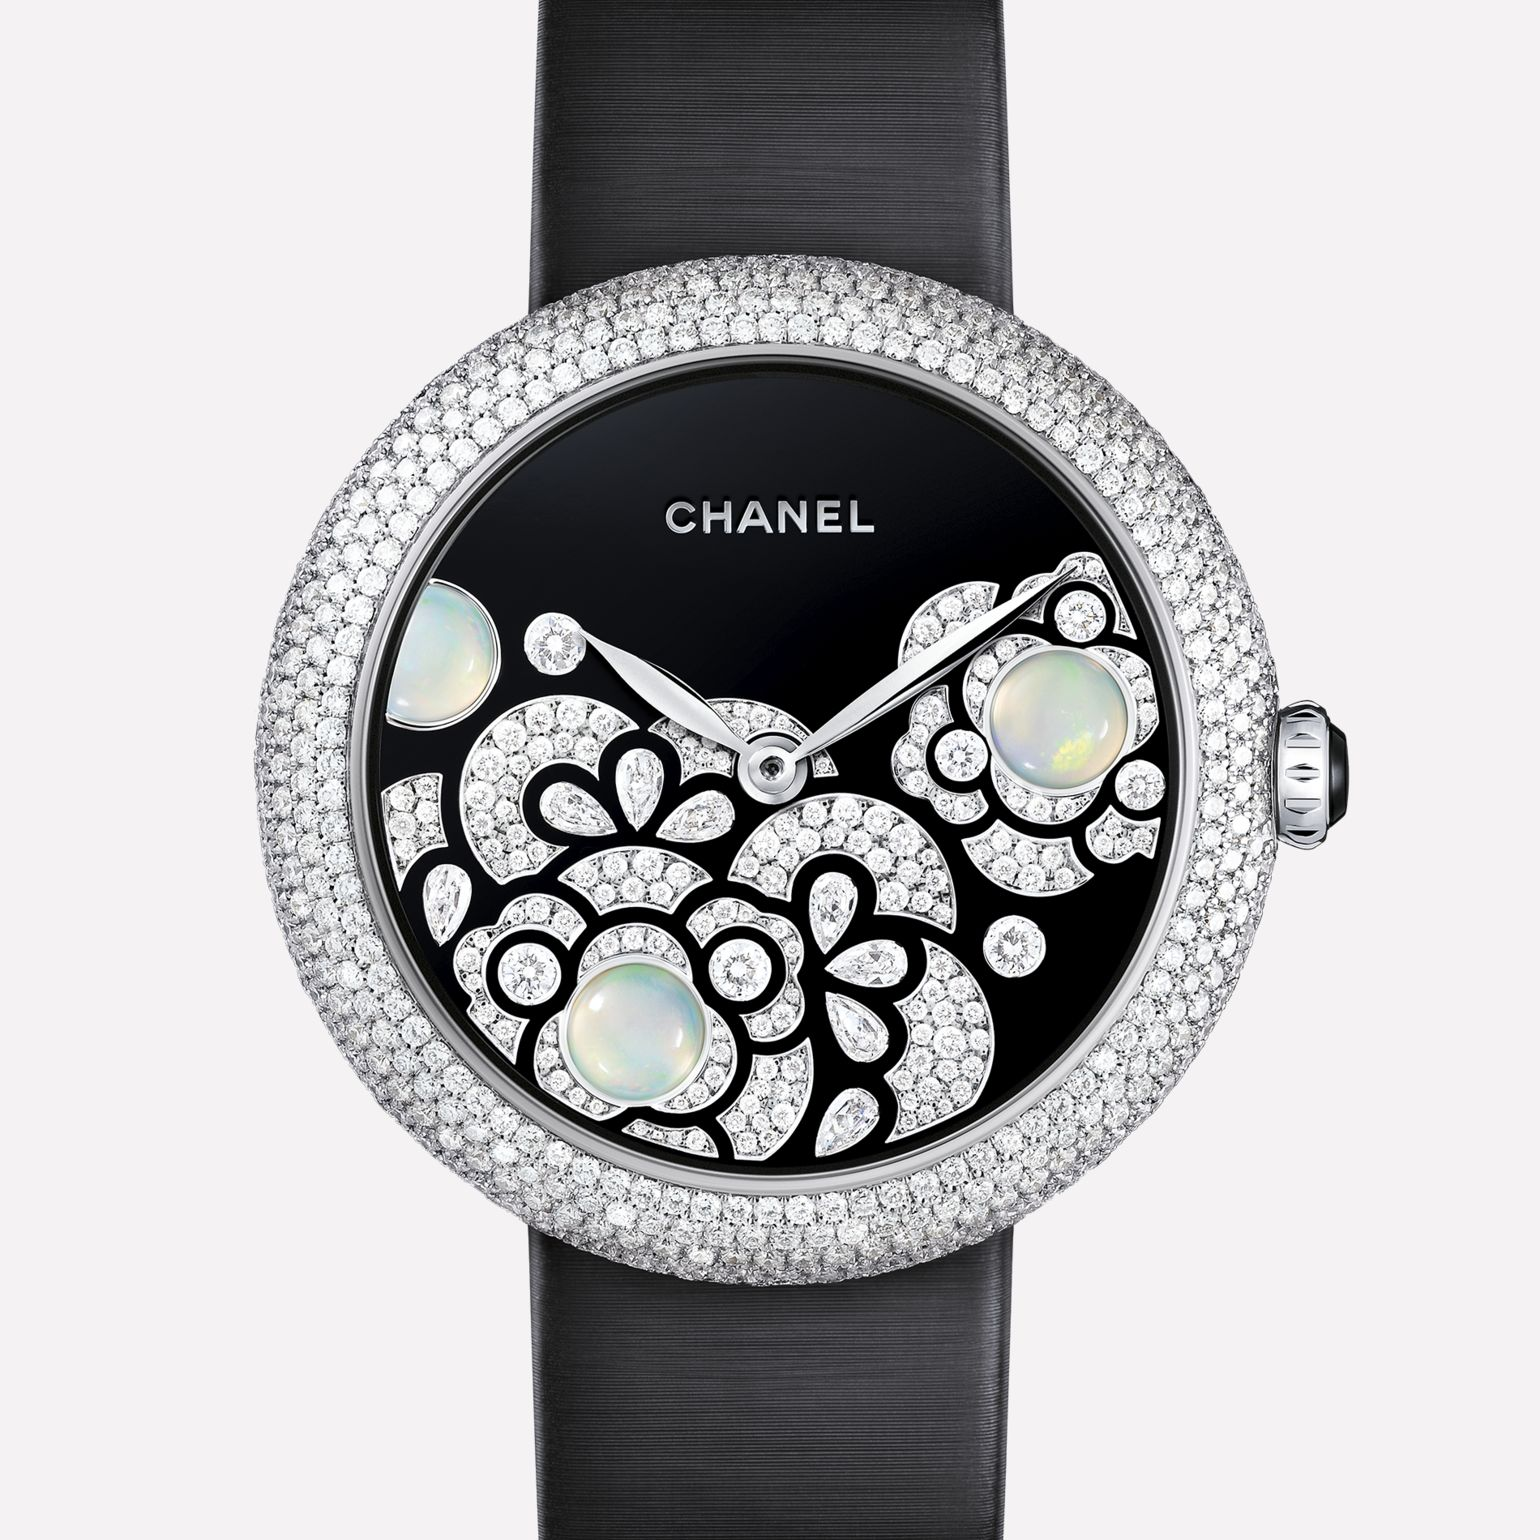 Mademoiselle Privé Watch Pétales de Camélia jewelry - Grand Feu black enamel, diamonds, and opals